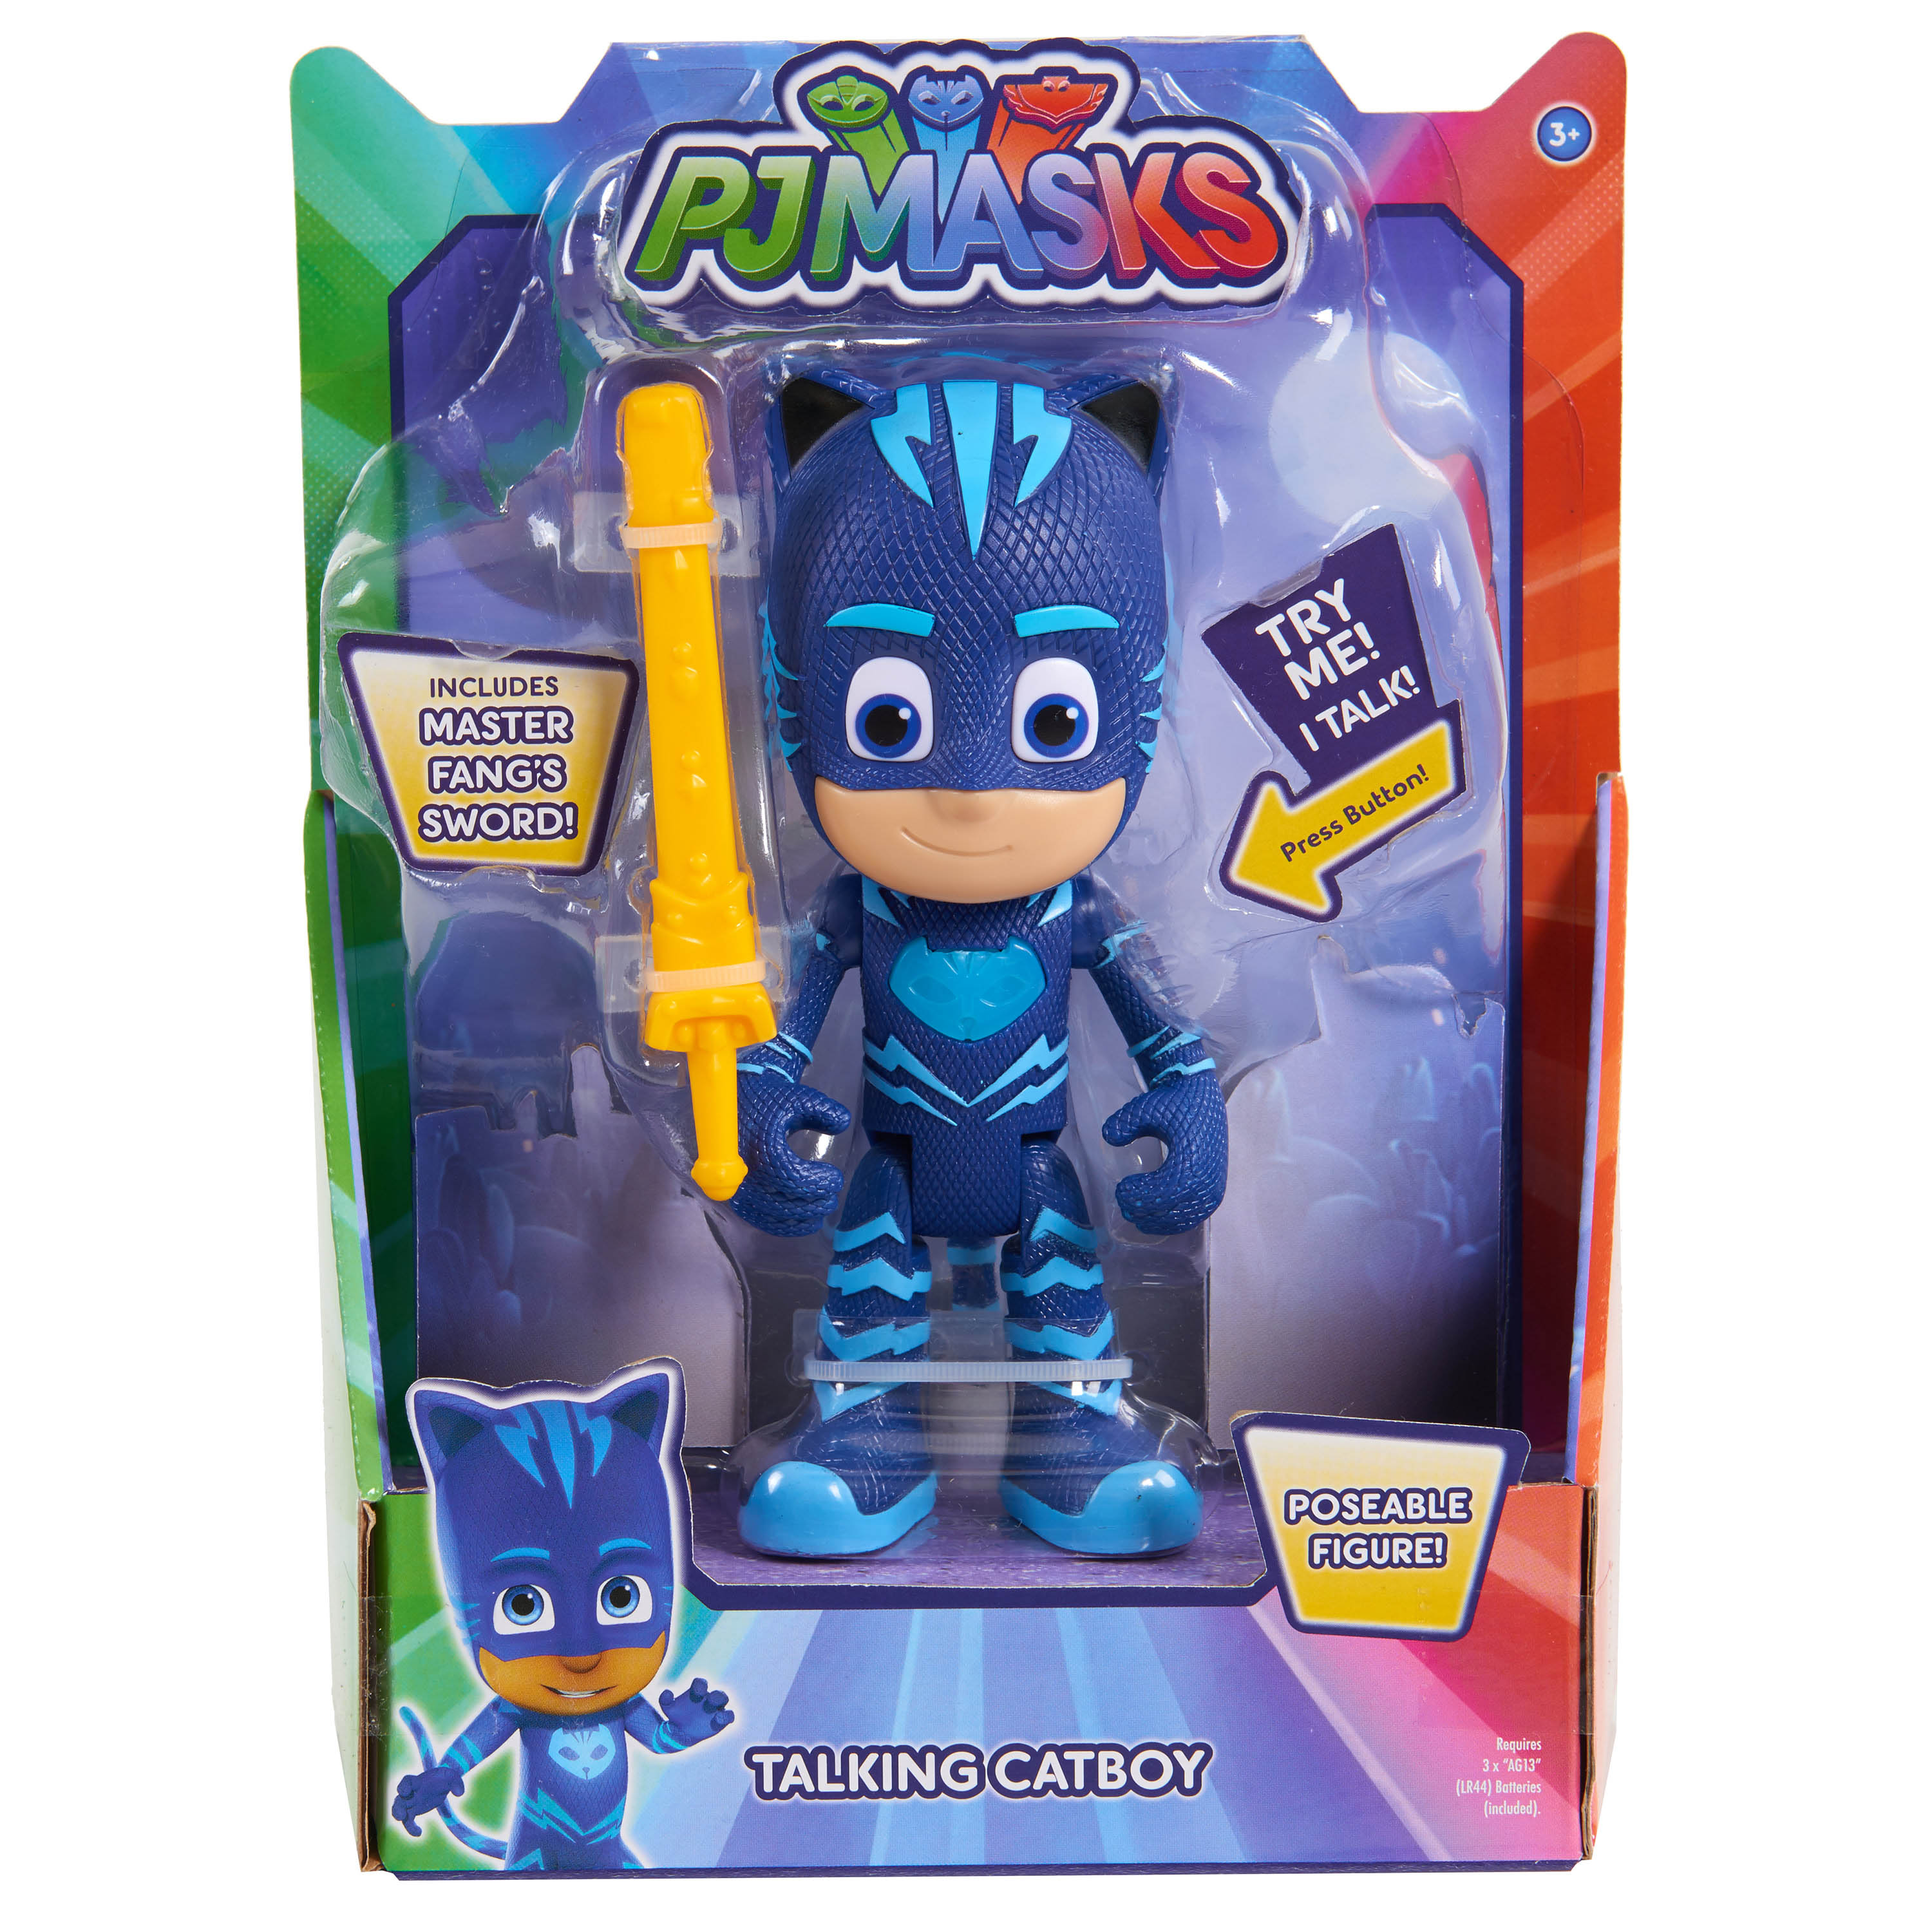 PJ Masks Talking Catboy Poseable Action Figure